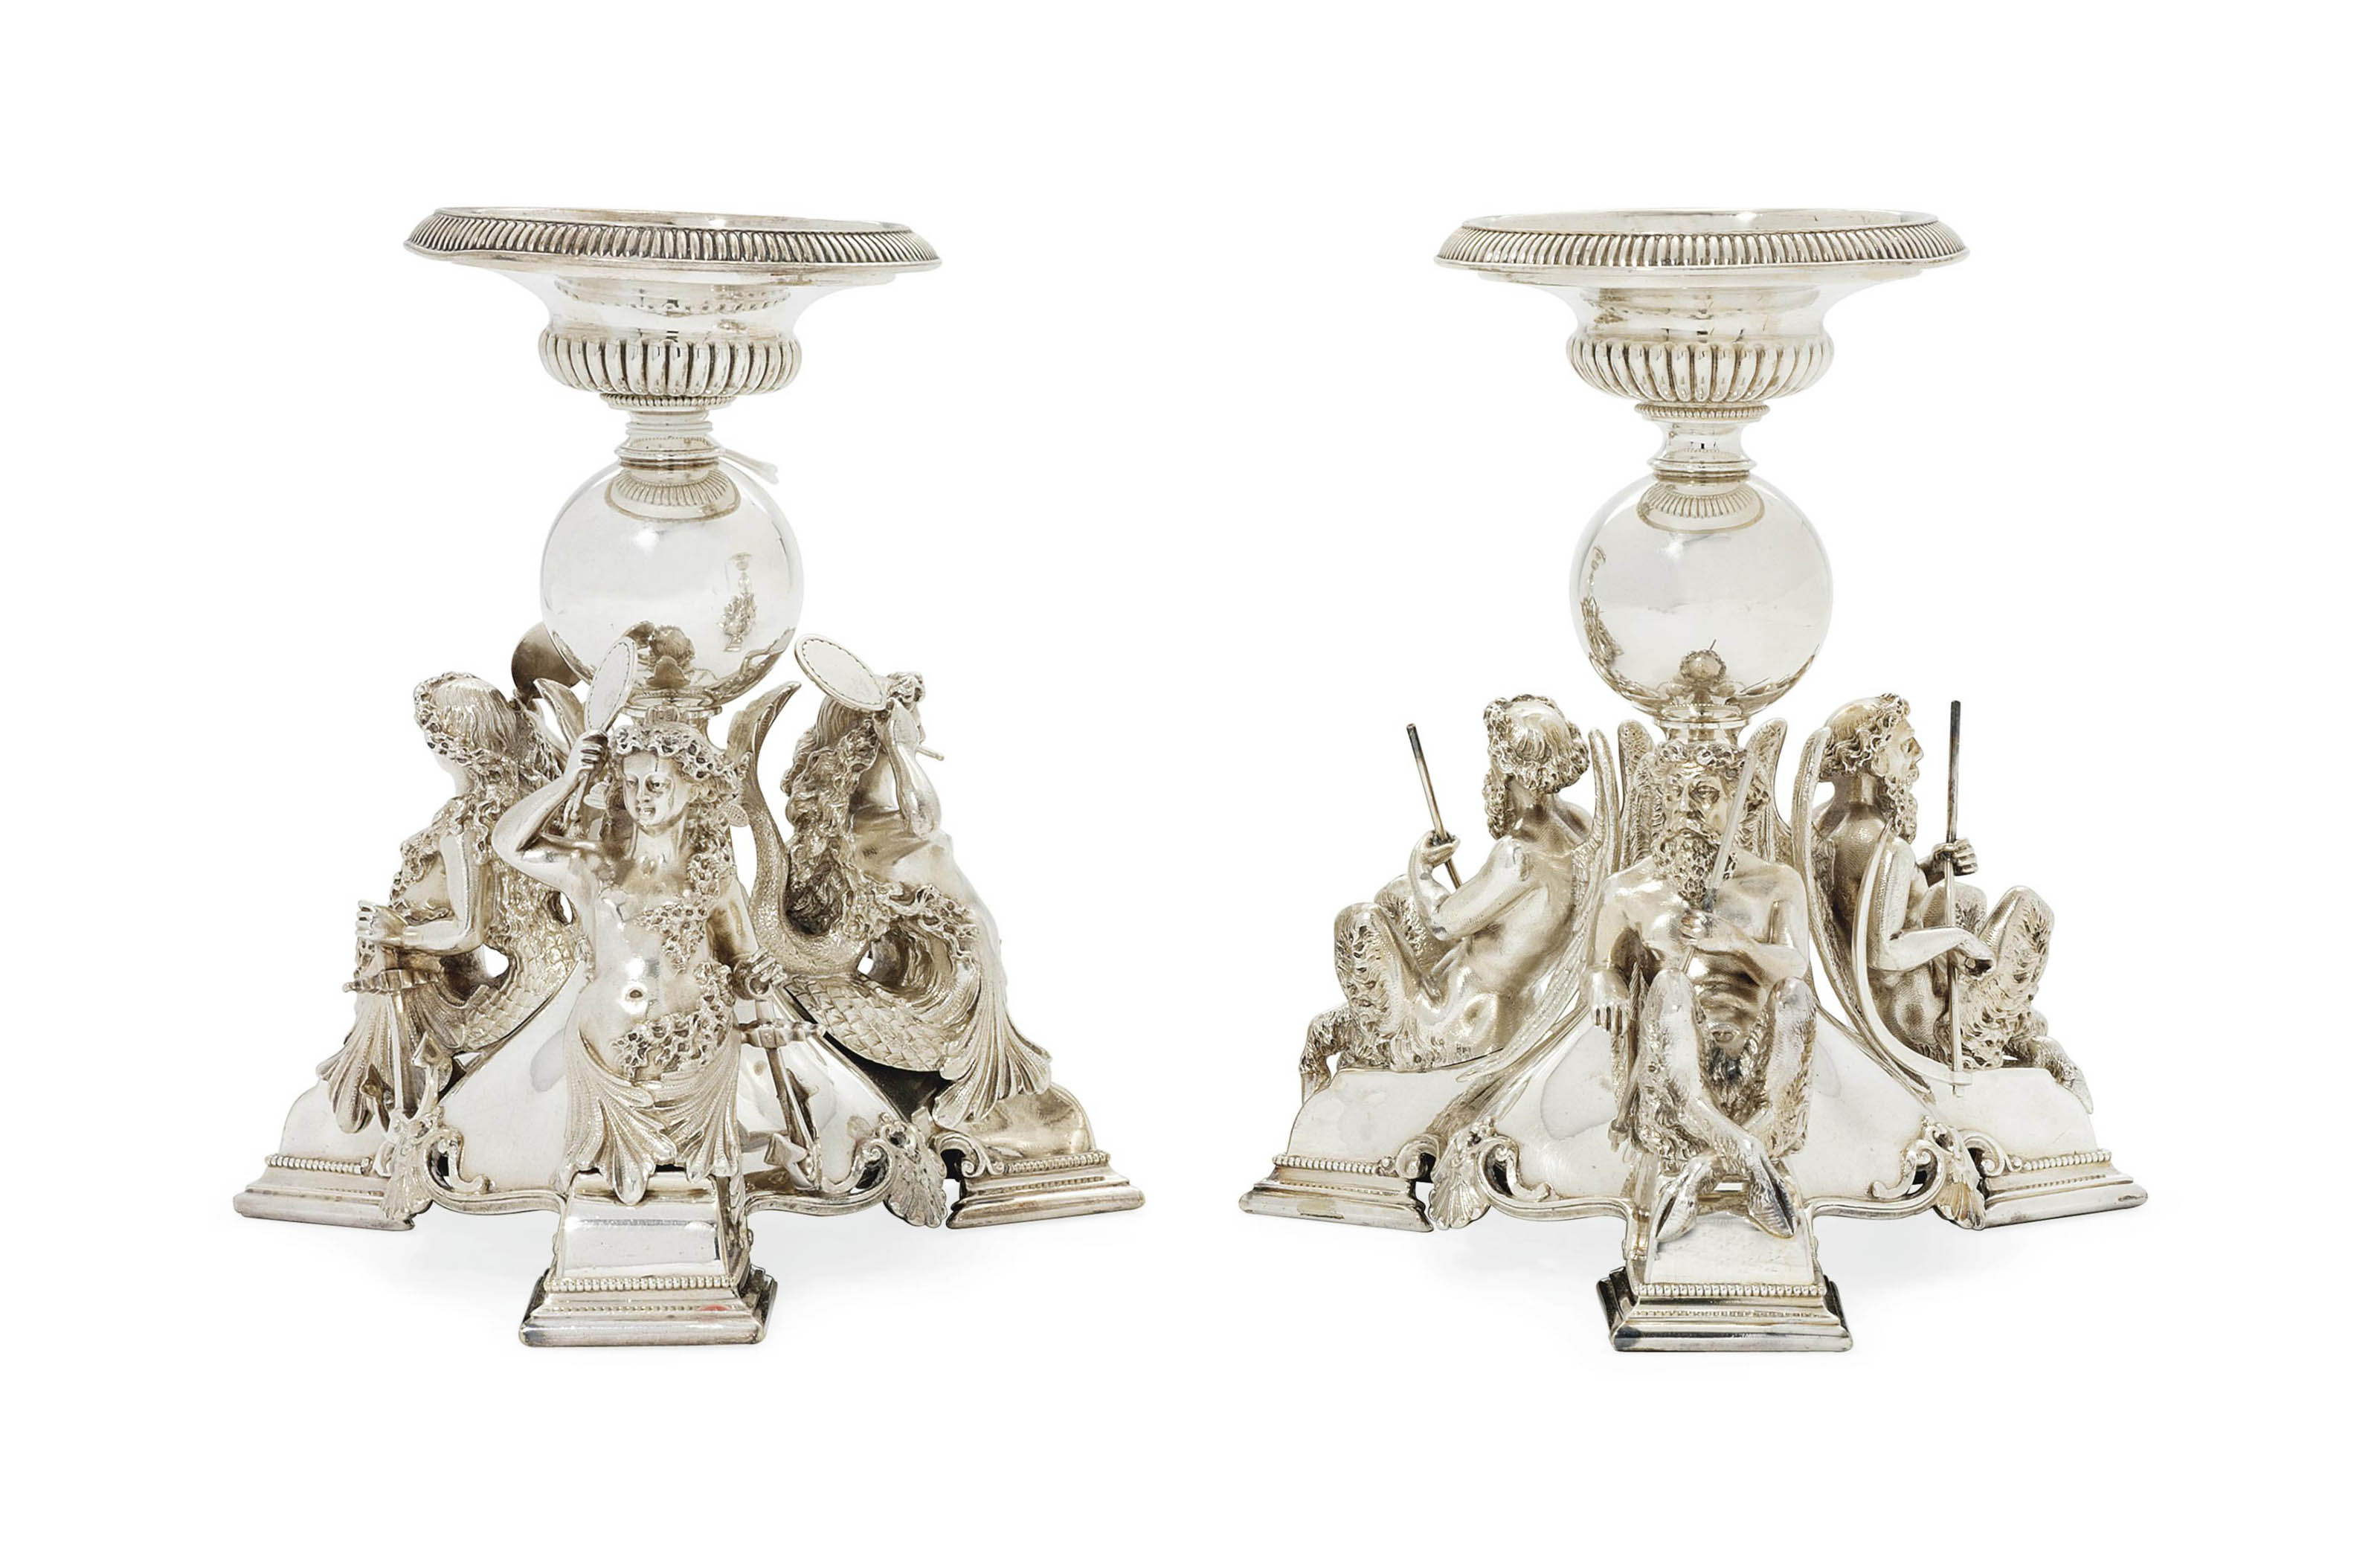 TWO VICTORIAN SILVER-PLATED DESSERT-STANDS